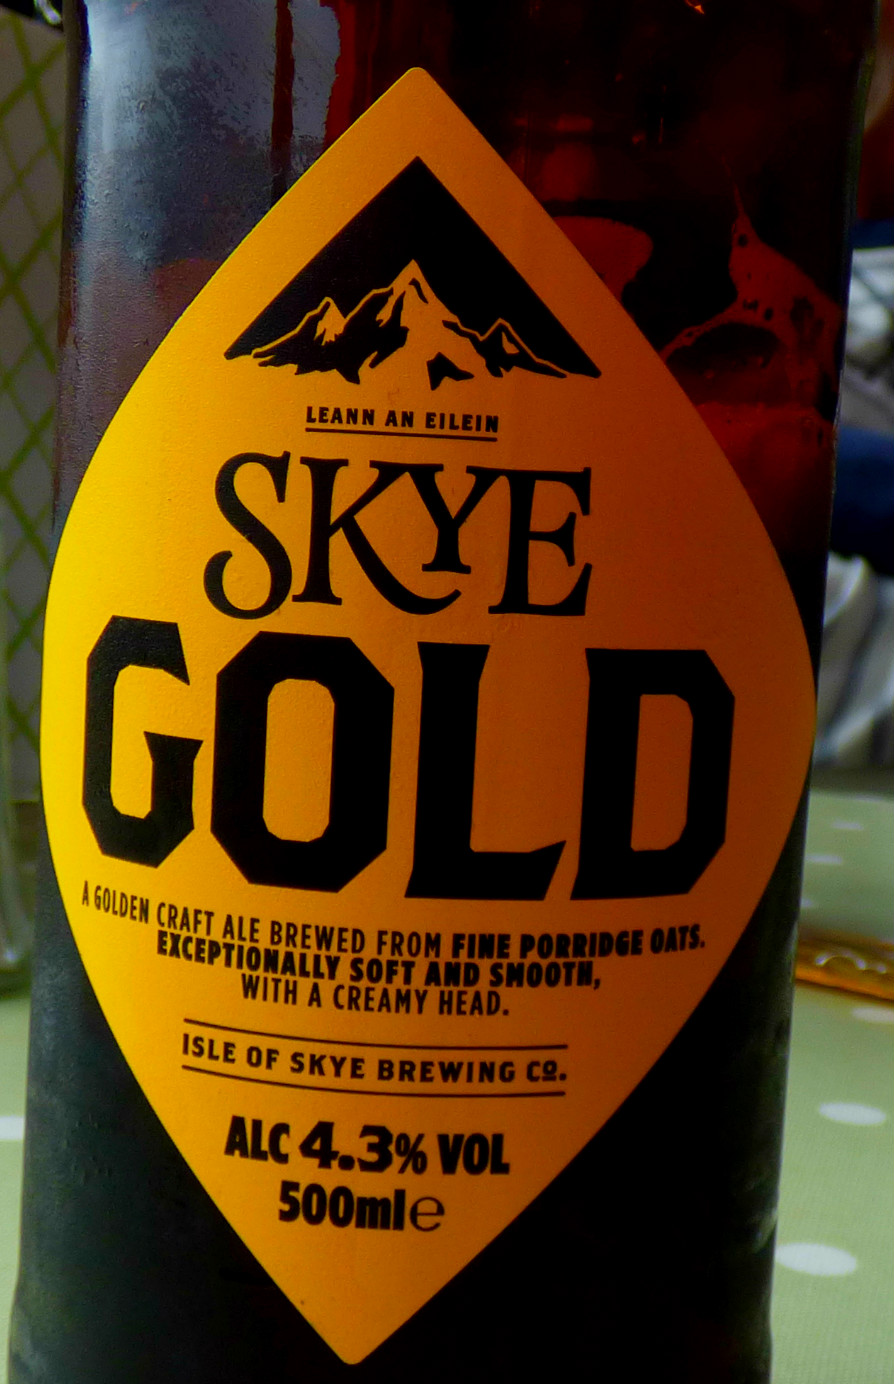 Scotland: Craft Ale From The Isle Of Skye